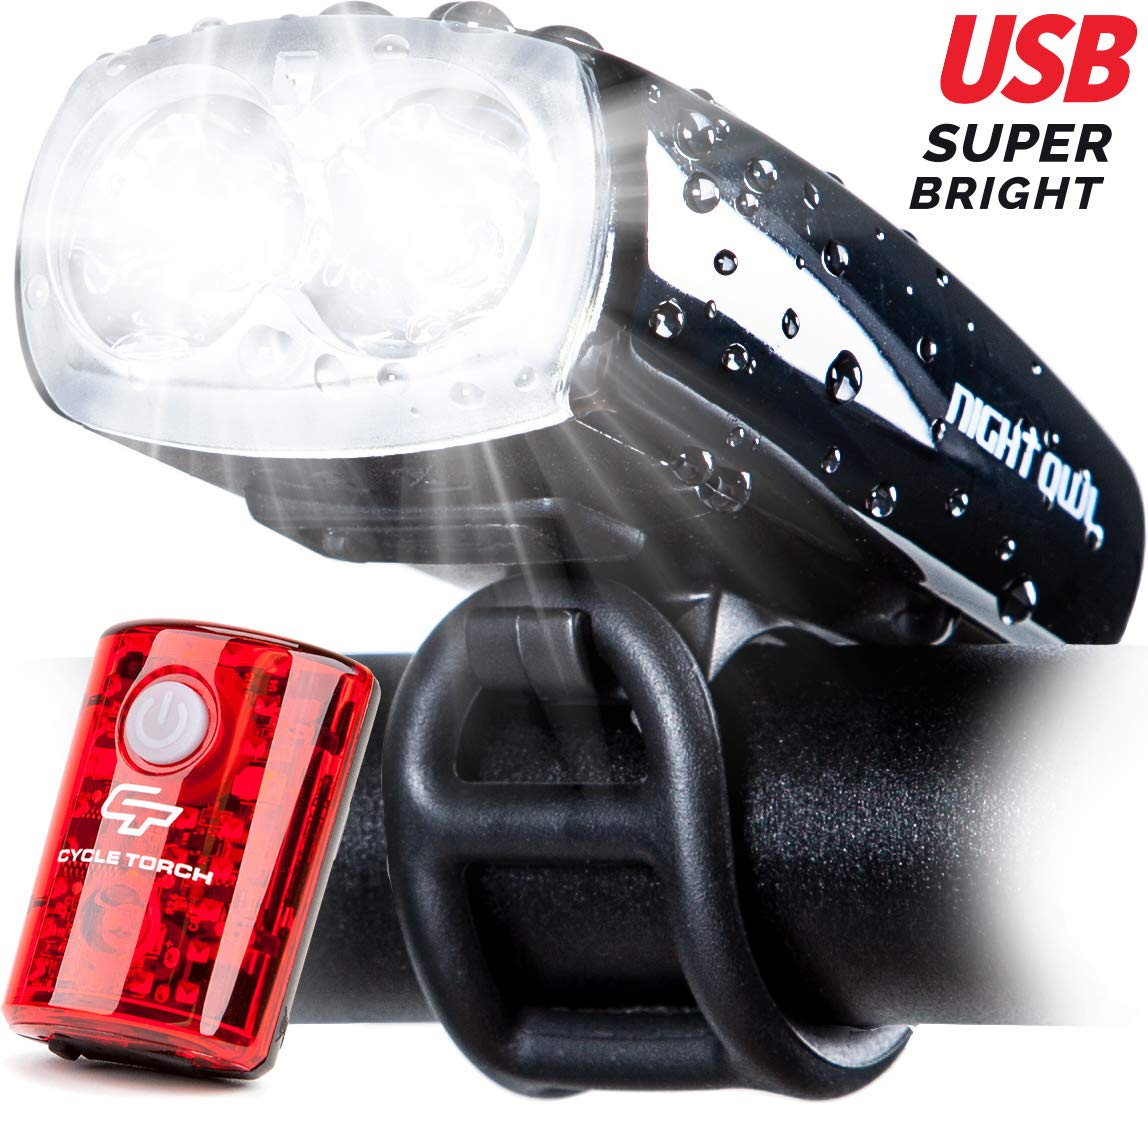 Cycle Torch Night Owl USB Rechargeable Bike Light Set, Perfect Commuter Safety Front and Back Bicycle Light LED Combo